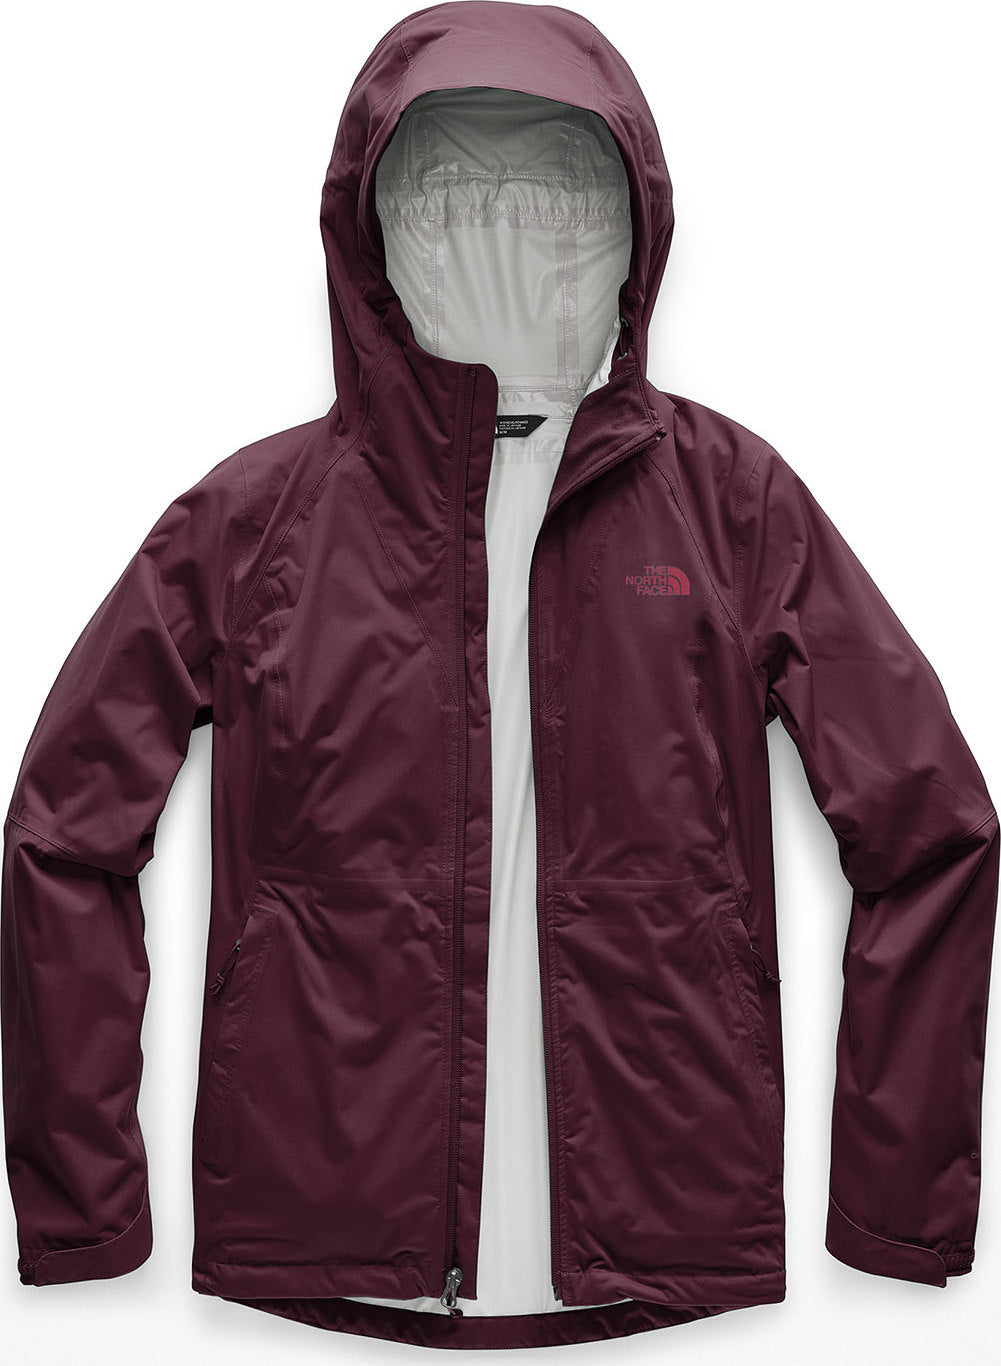 53ecff5a30b1 The North Face Women s Allproof Stretch Jacket